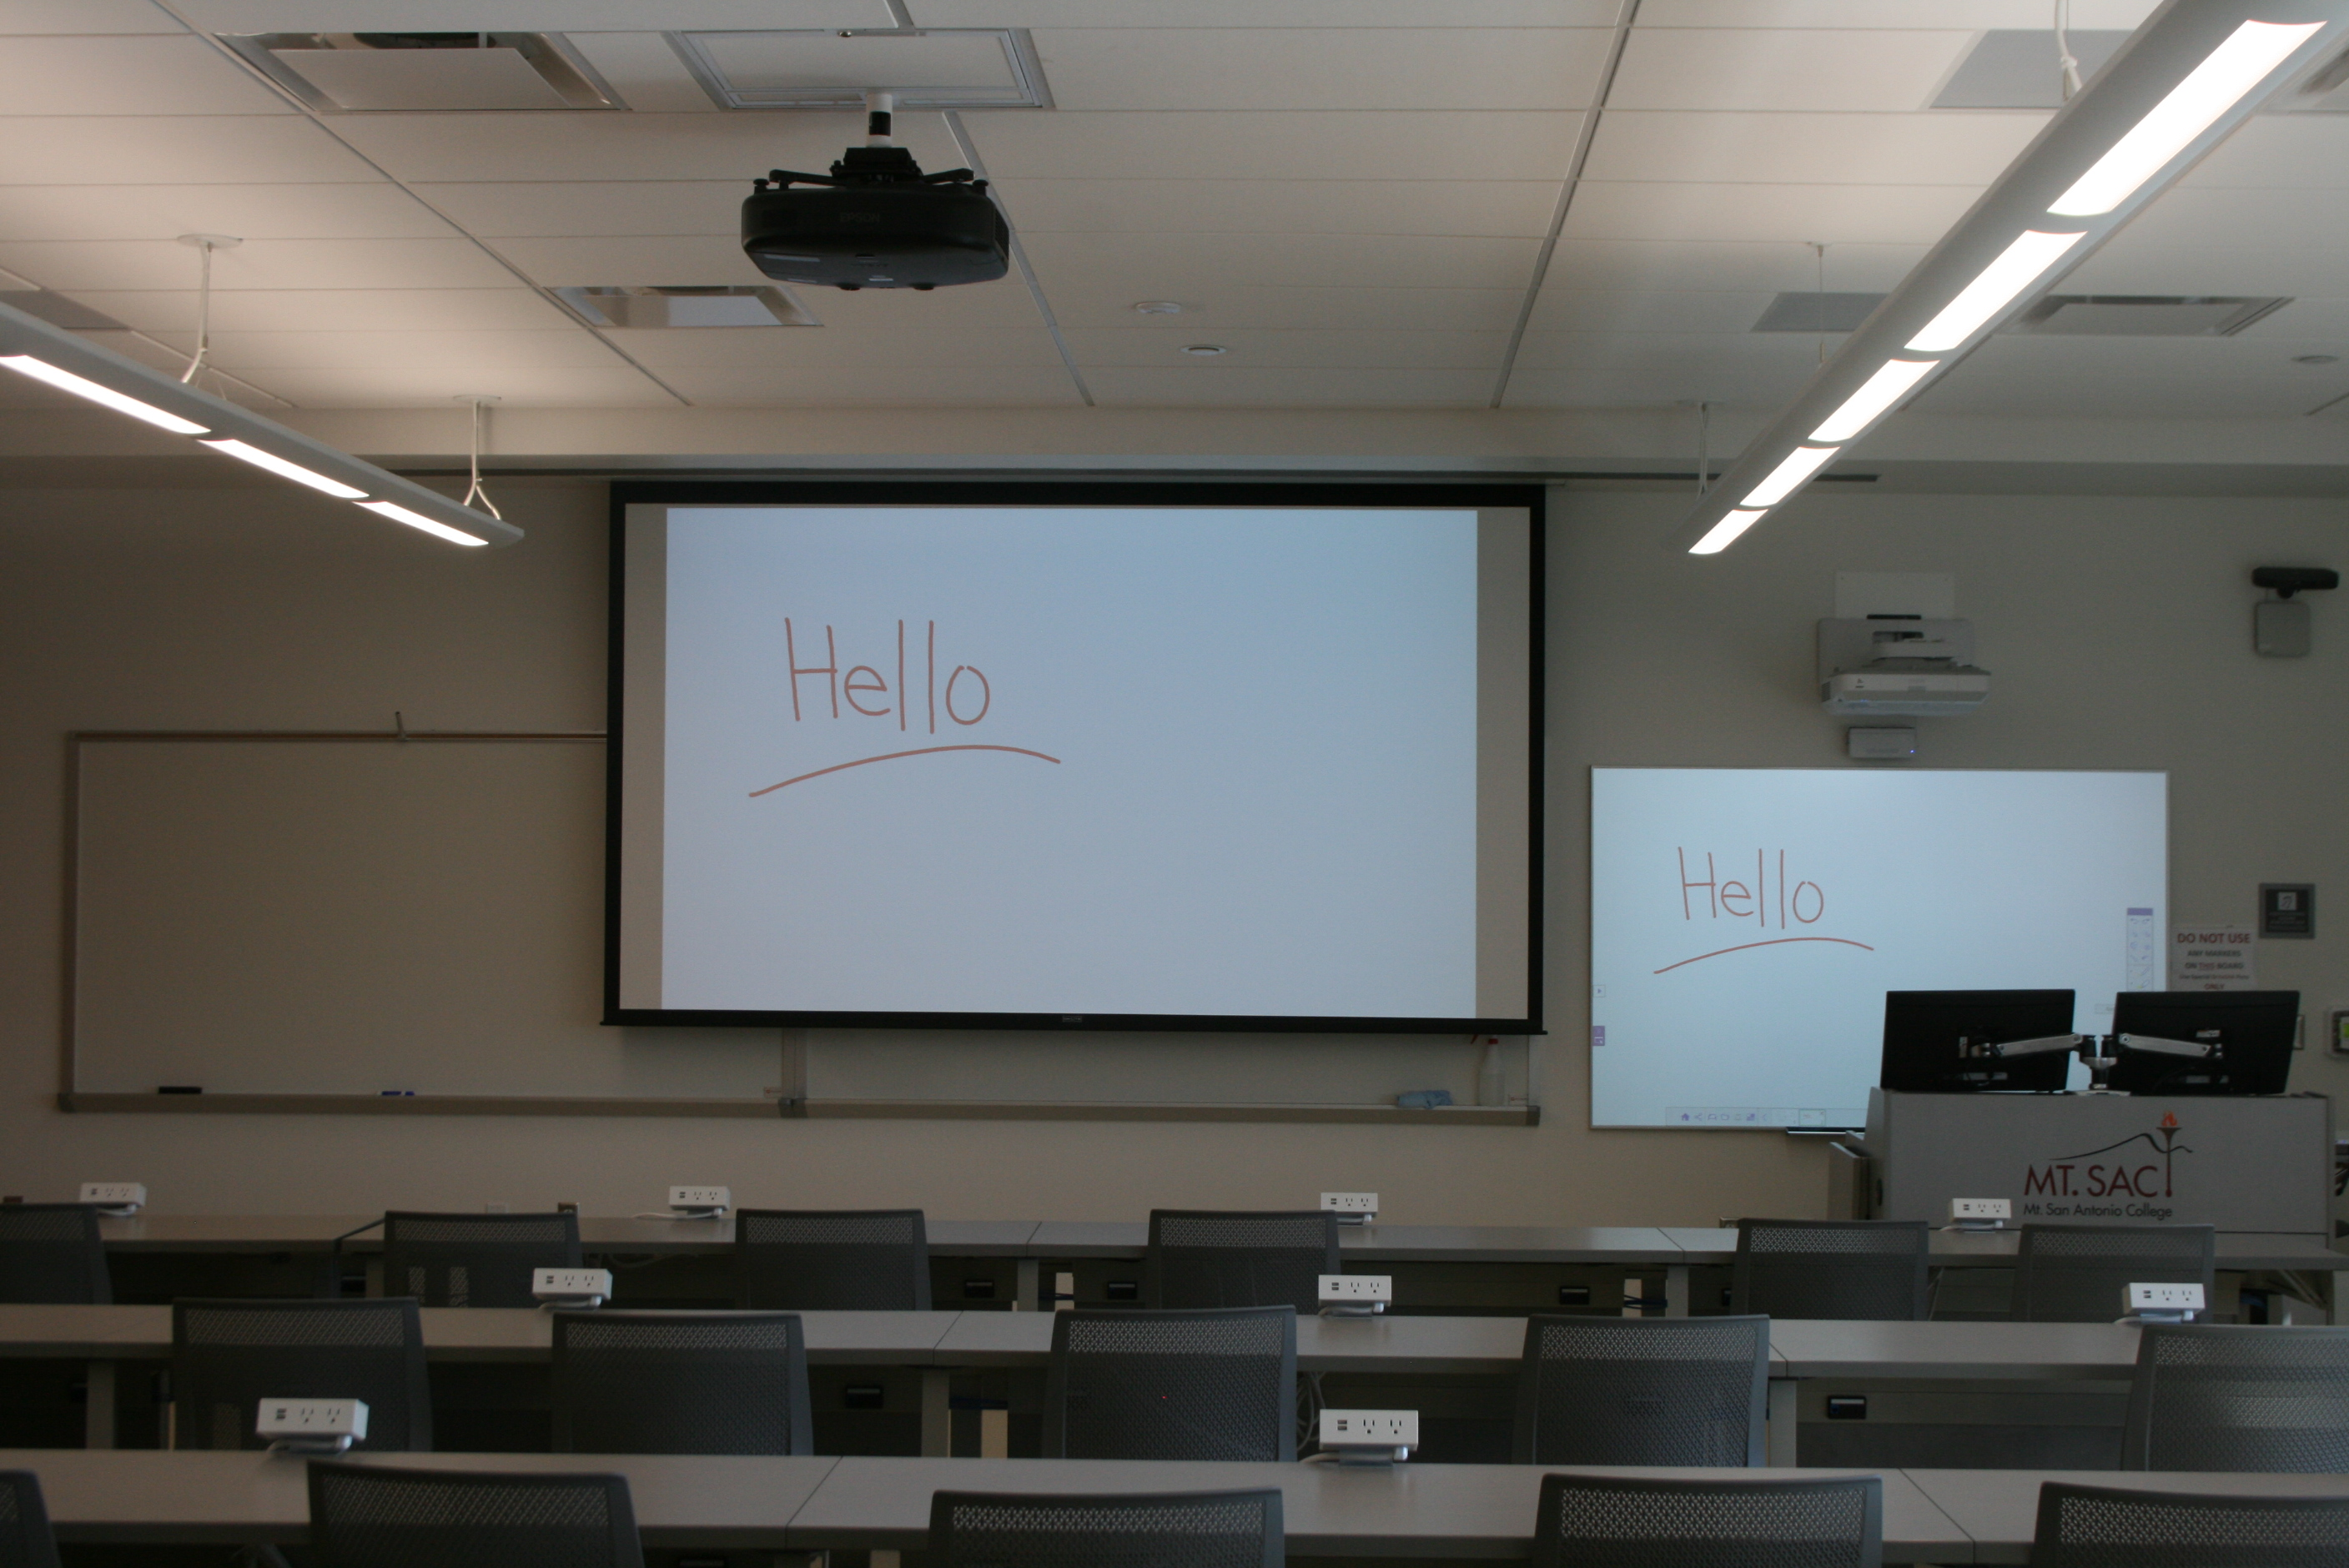 To enhance interactivity and clarify lesson points, the instructor can use the Extron Annotator 300 and connected touch display at the lectern.